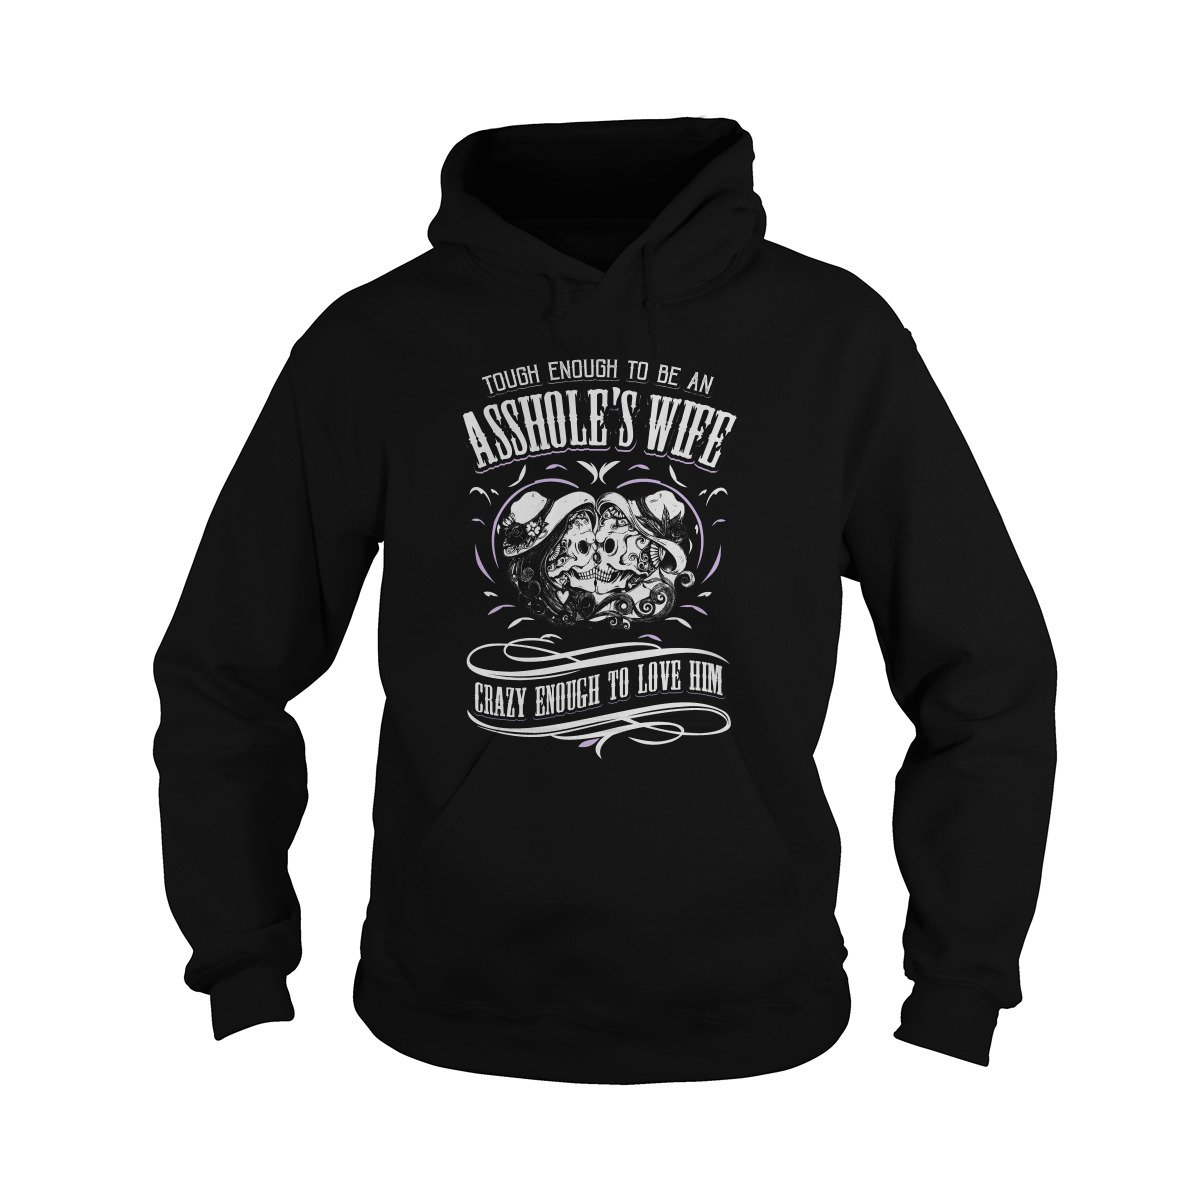 Unisex Tough Enough to be an Asshole's Wife Crazy Enough to Love him Hoodie (XL, Black)